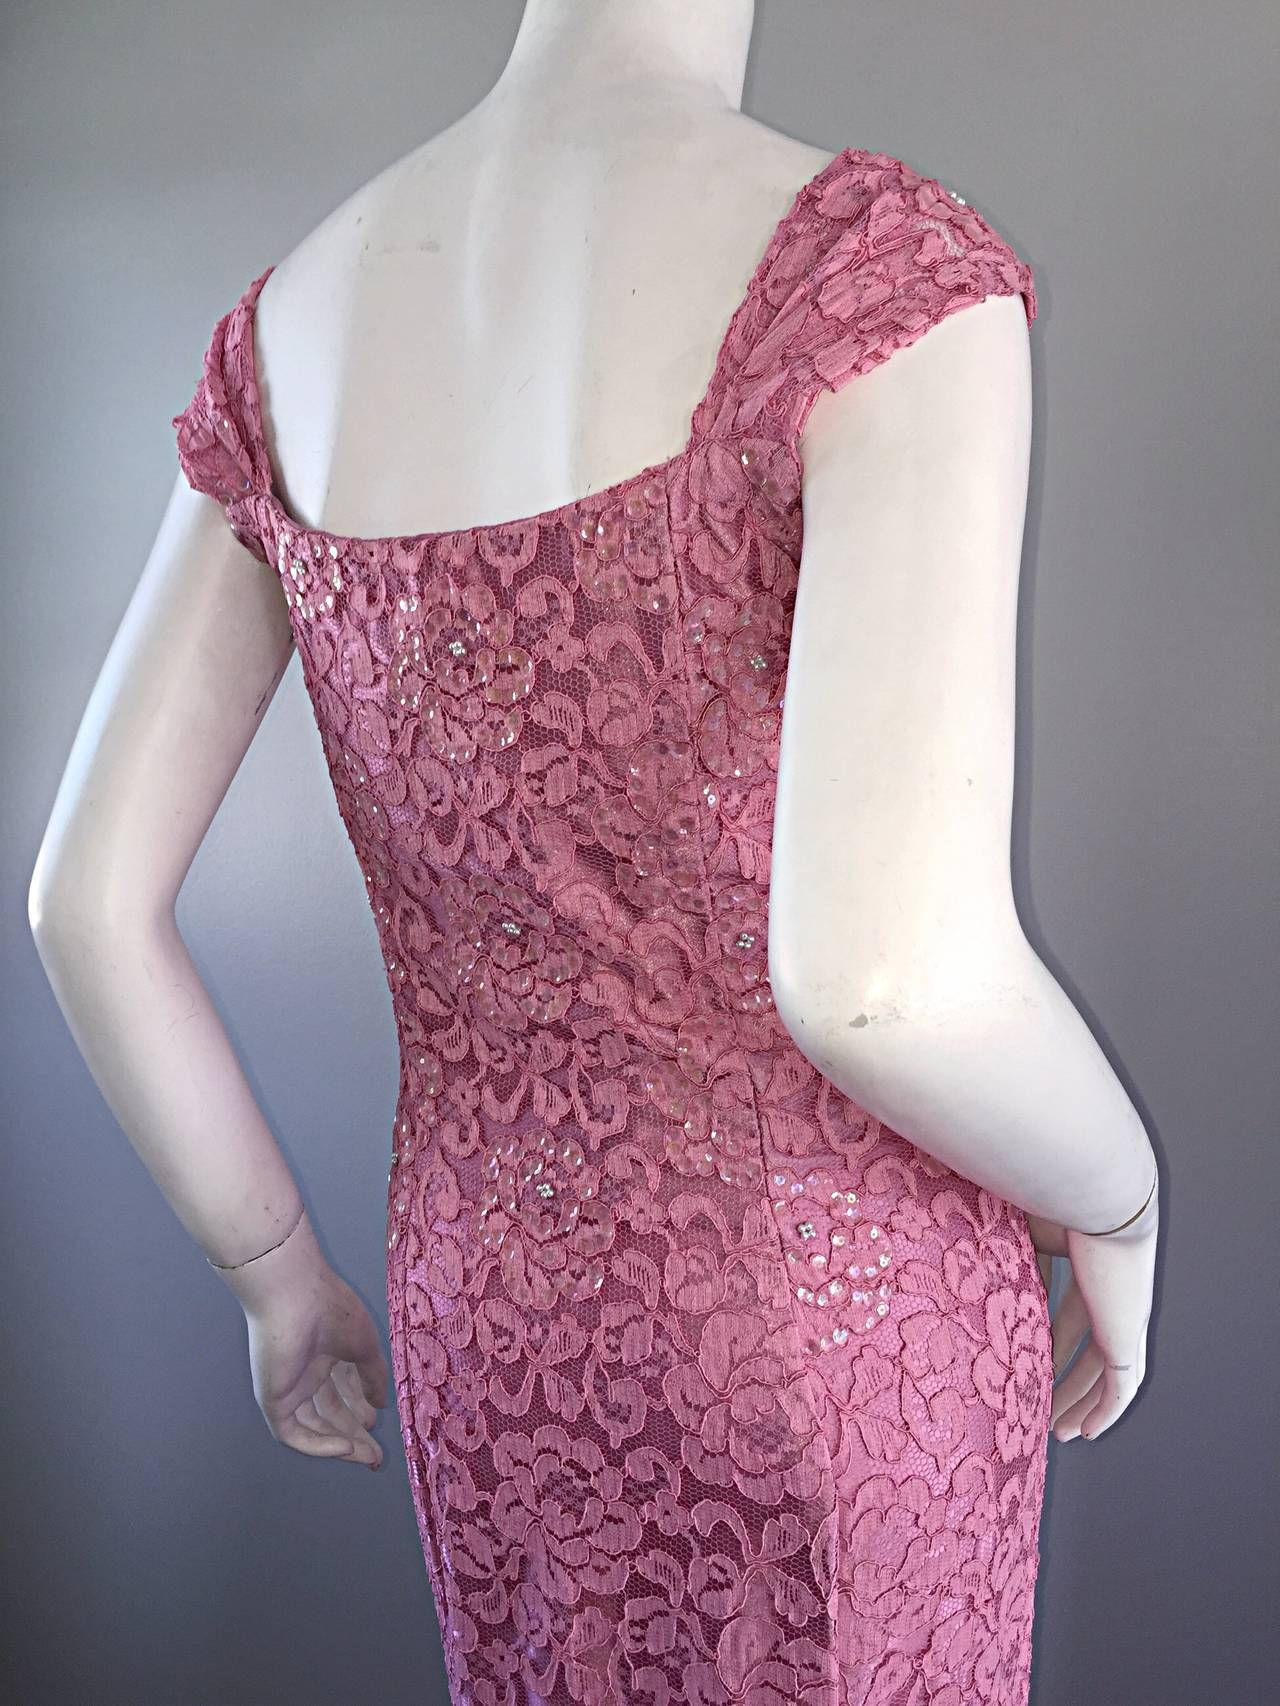 Gorgeous 1950s 50s Couture Pink Vintage Mermaid Dress w/ Chantilly Lace + Sequin 8